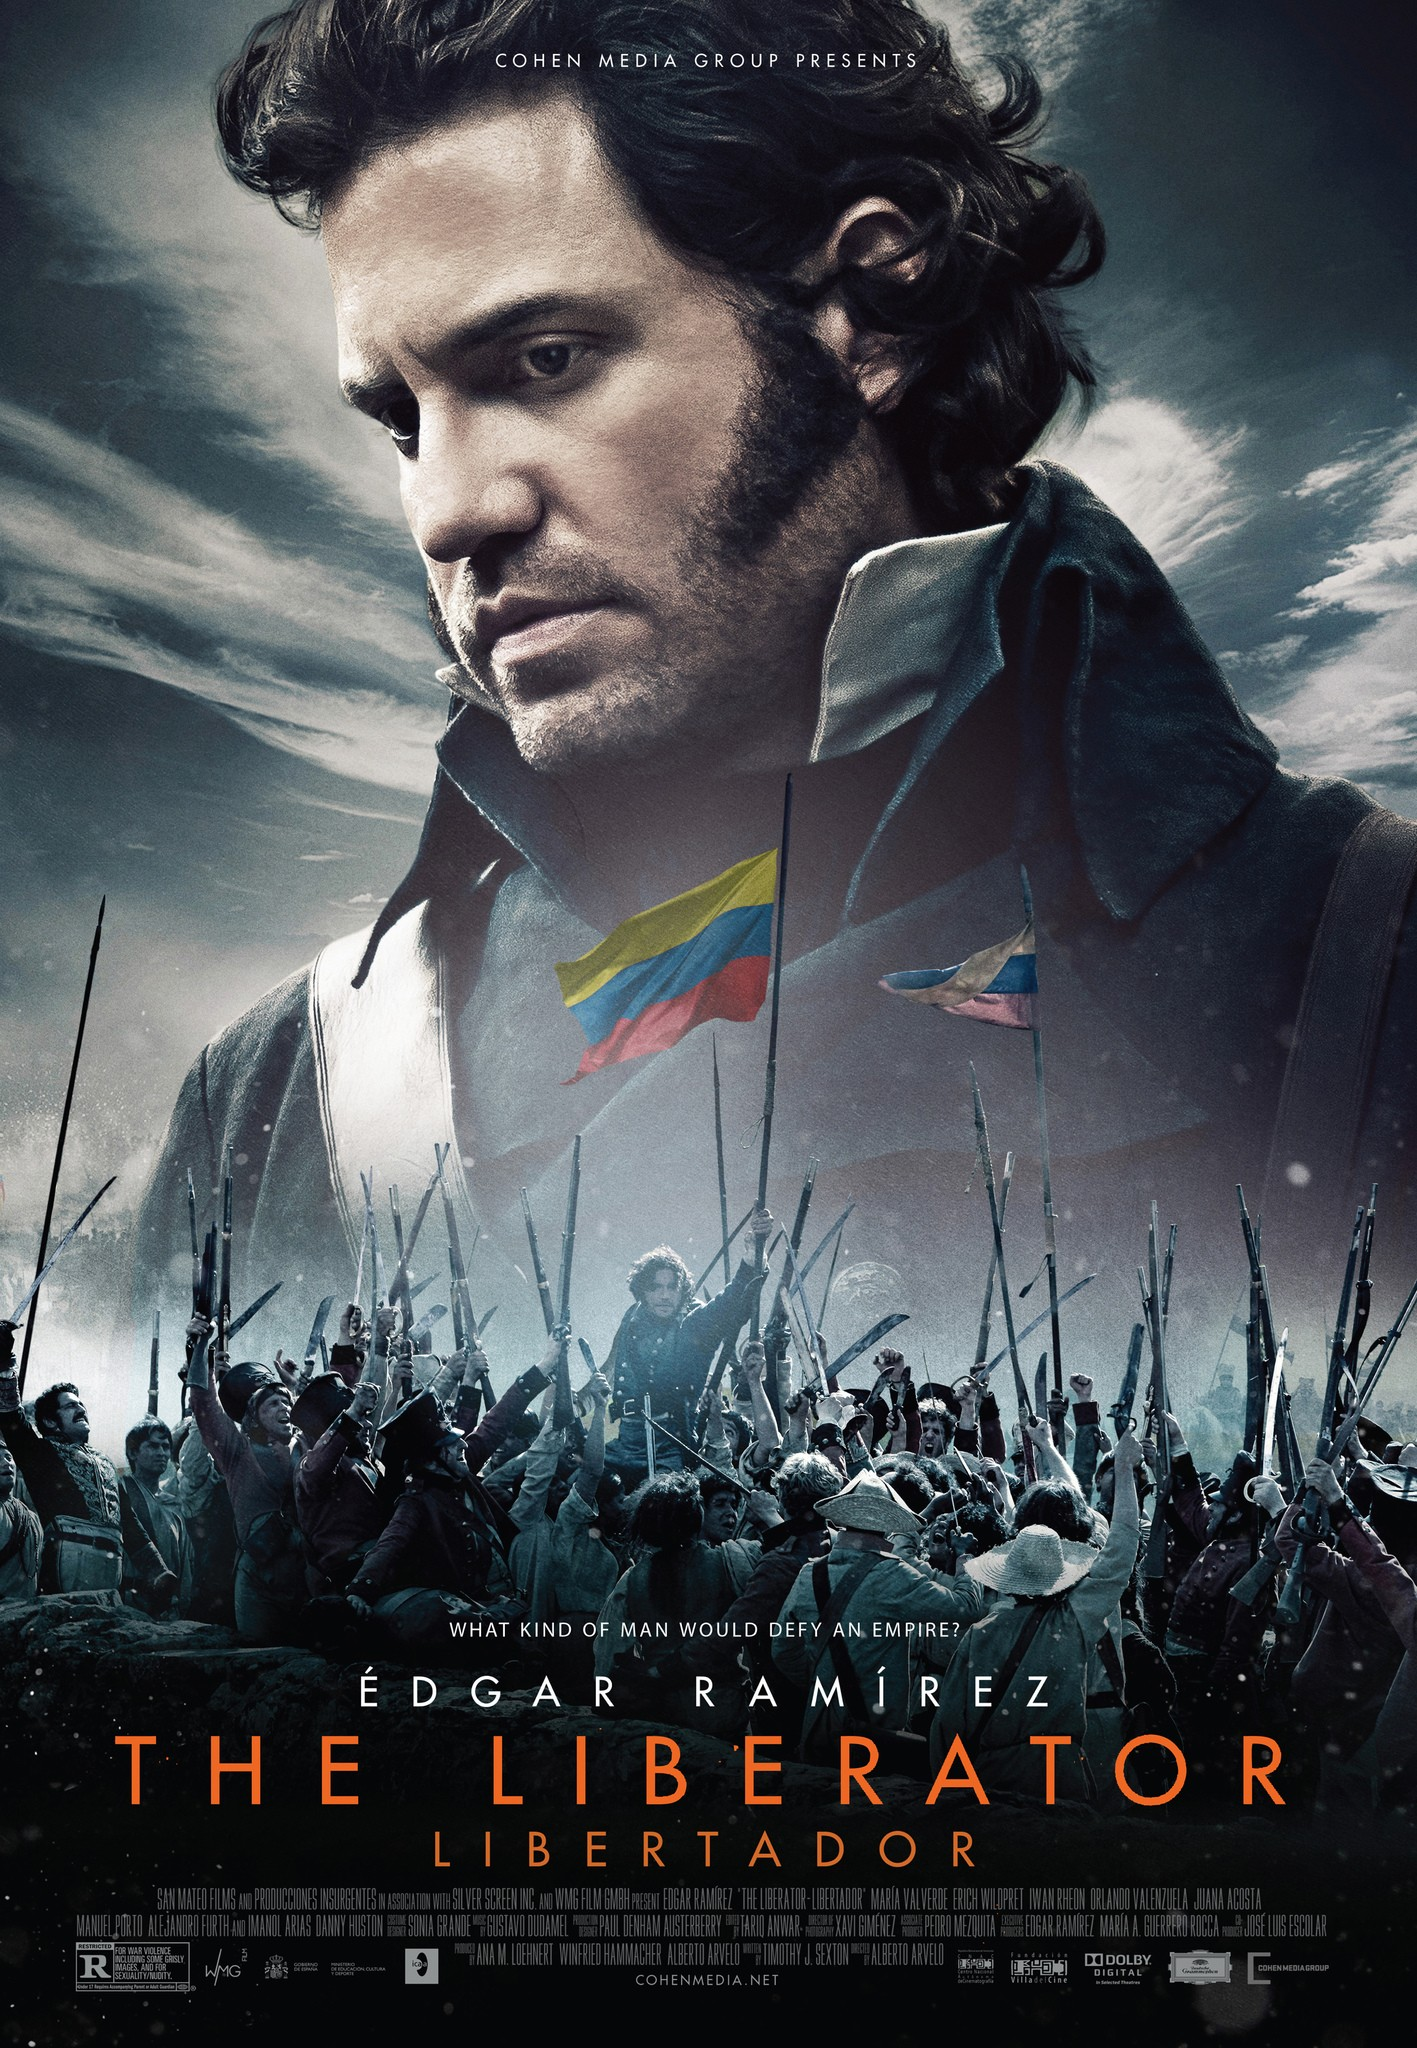 The Liberator-Official Poster Banner PROMO XXLG-15JULHO2014